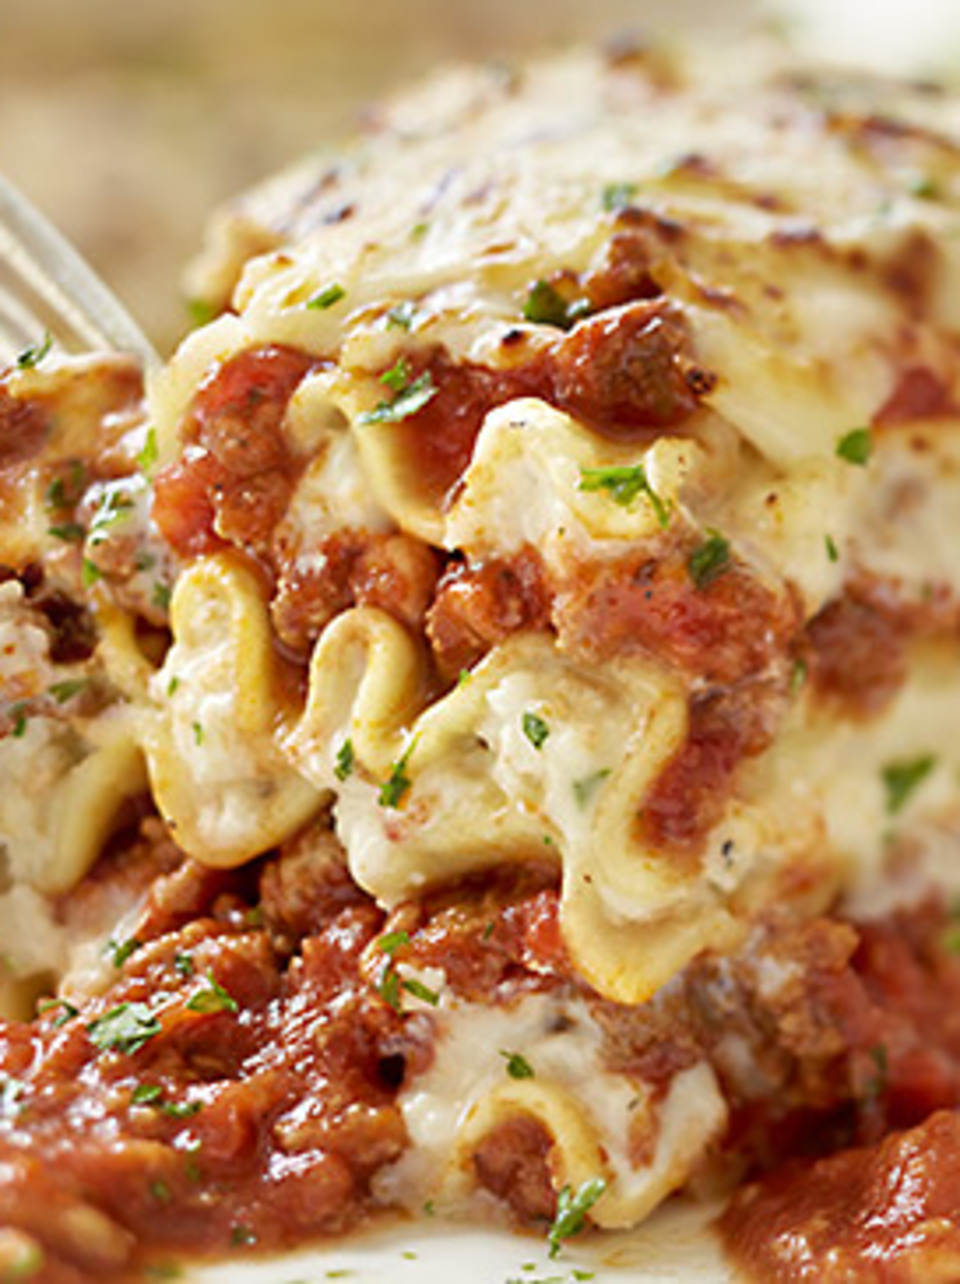 Olive Garden To Offer Early Dinner Deals In Time For Daylight